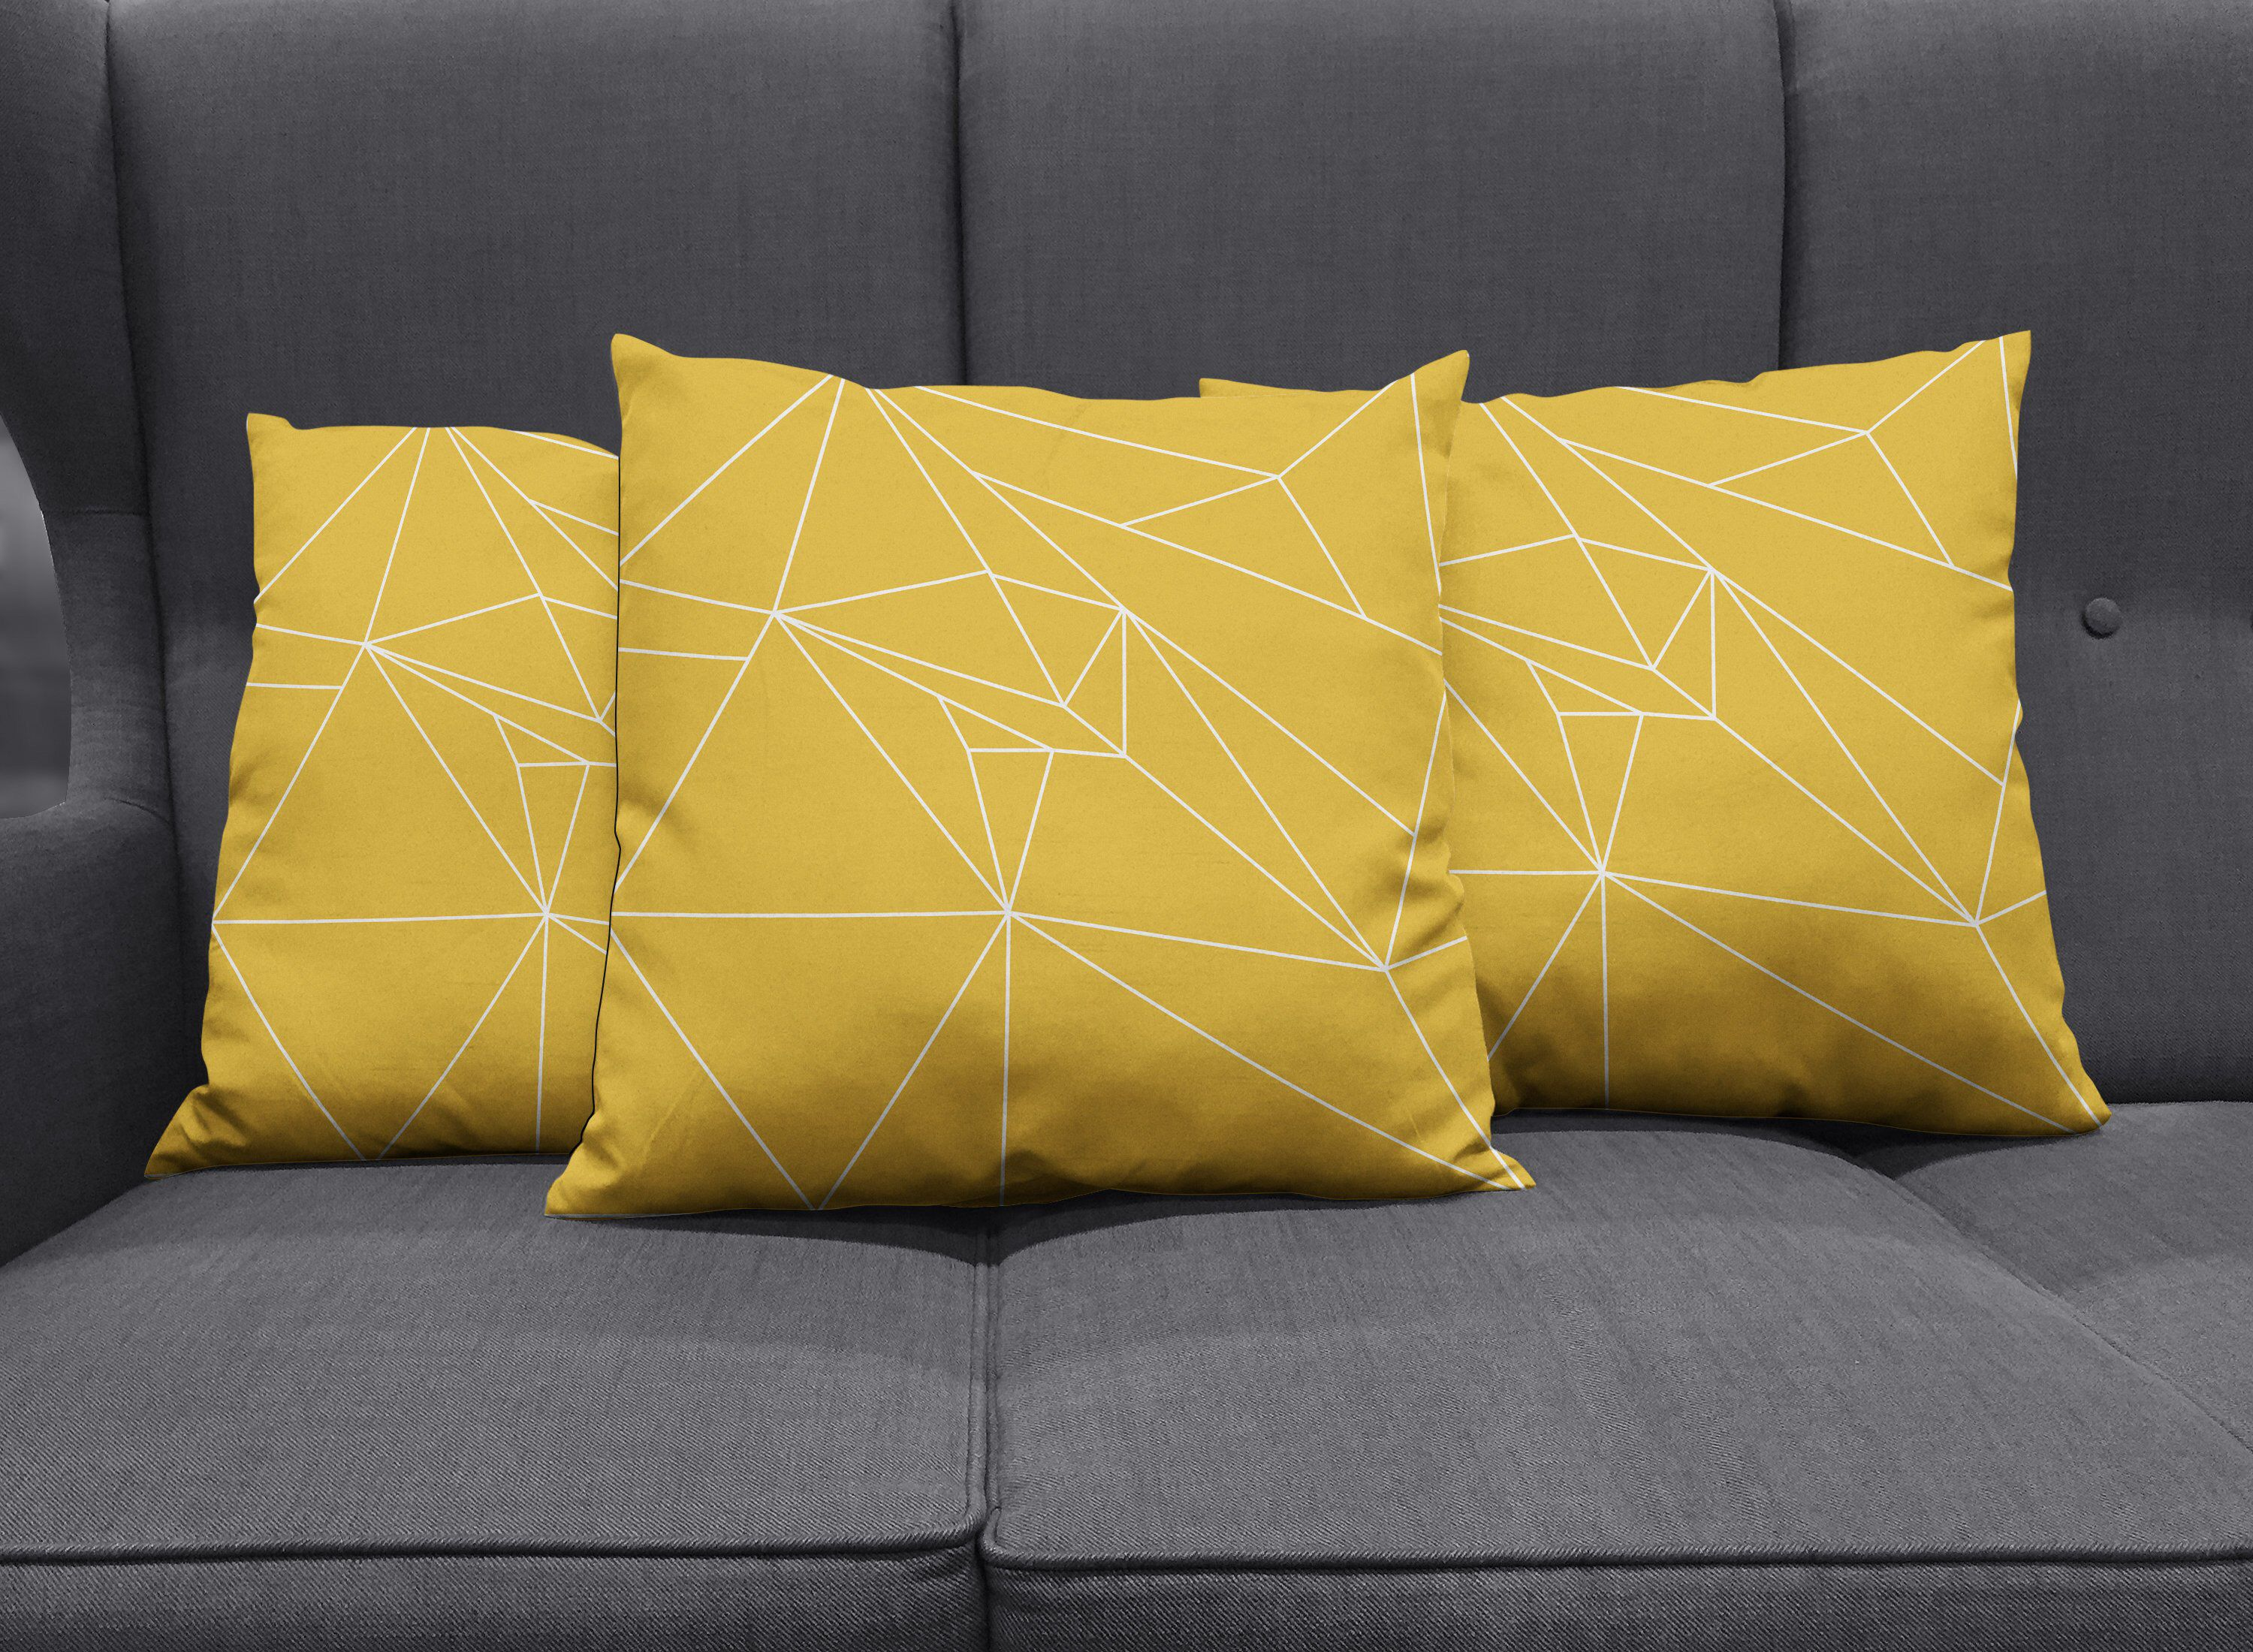 Yellow Cushions Yellow Home Decor Home Accessories Yellow Living Room Yellow Throw Pillows New Home Gift Christmas Gift Cushions Yellow Home Decor Yellow Throw Pillows Yellow Living Room